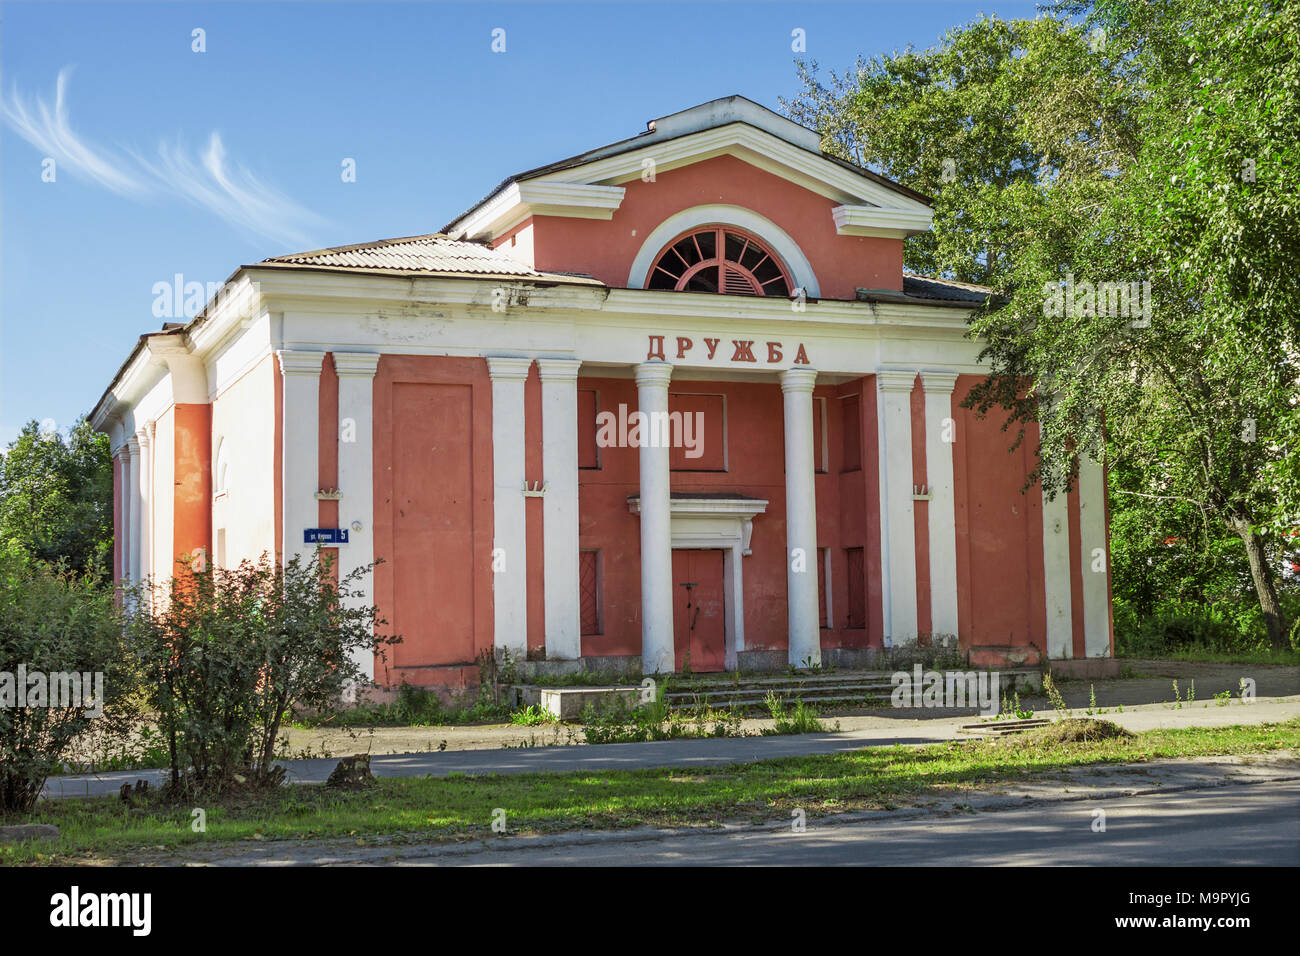 Medvezhegorsk, Russia - Aug 26, 2012:  Building of the former cinema is a typical building of the post-war Stalinist architecture of the 1950s of the Stock Photo